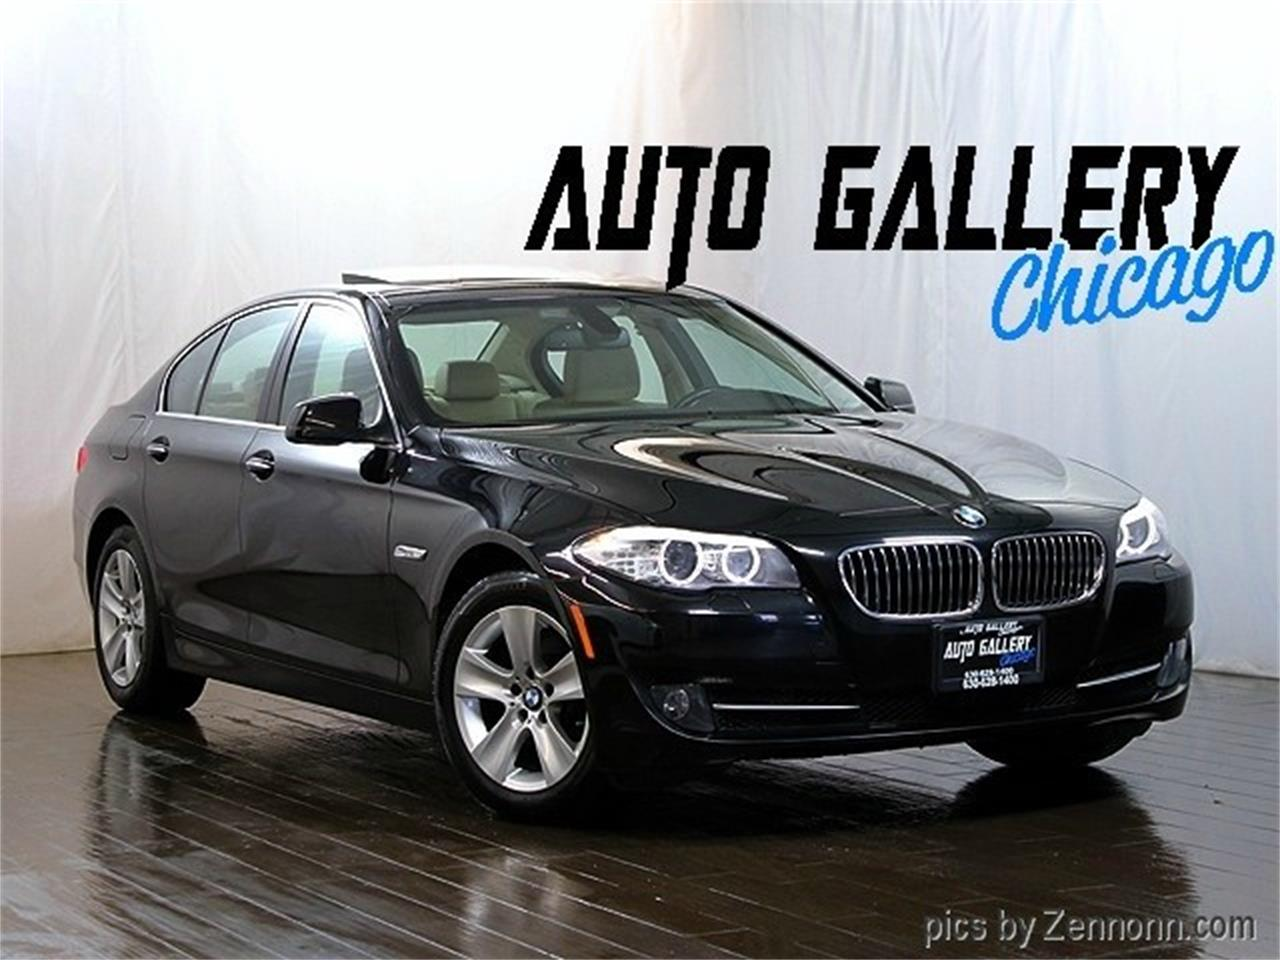 Large Picture of '11 BMW 5 Series located in Illinois - $12,790.00 - MZHN